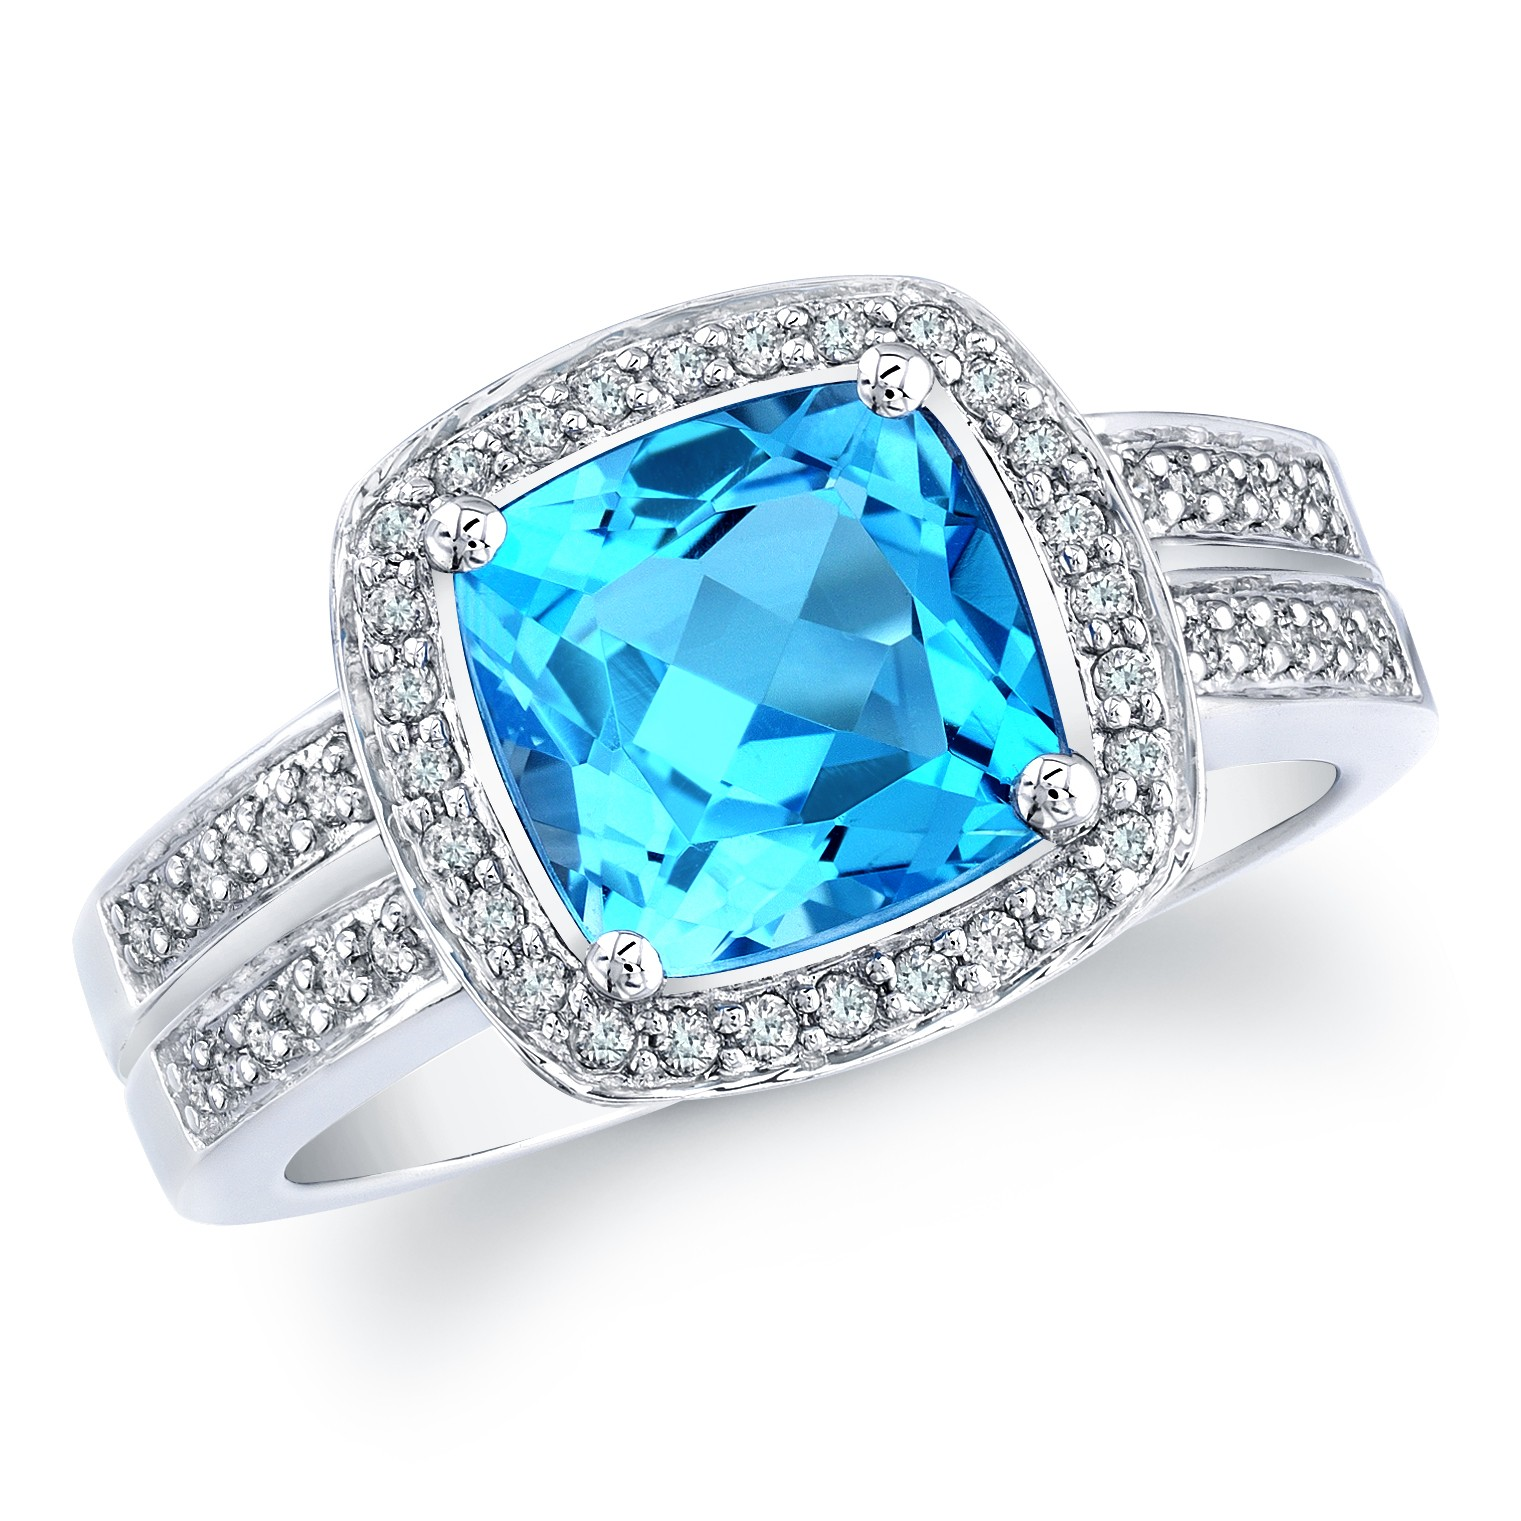 ring mv diamond accents en blue kaystore topaz rings zm sterling kay silver